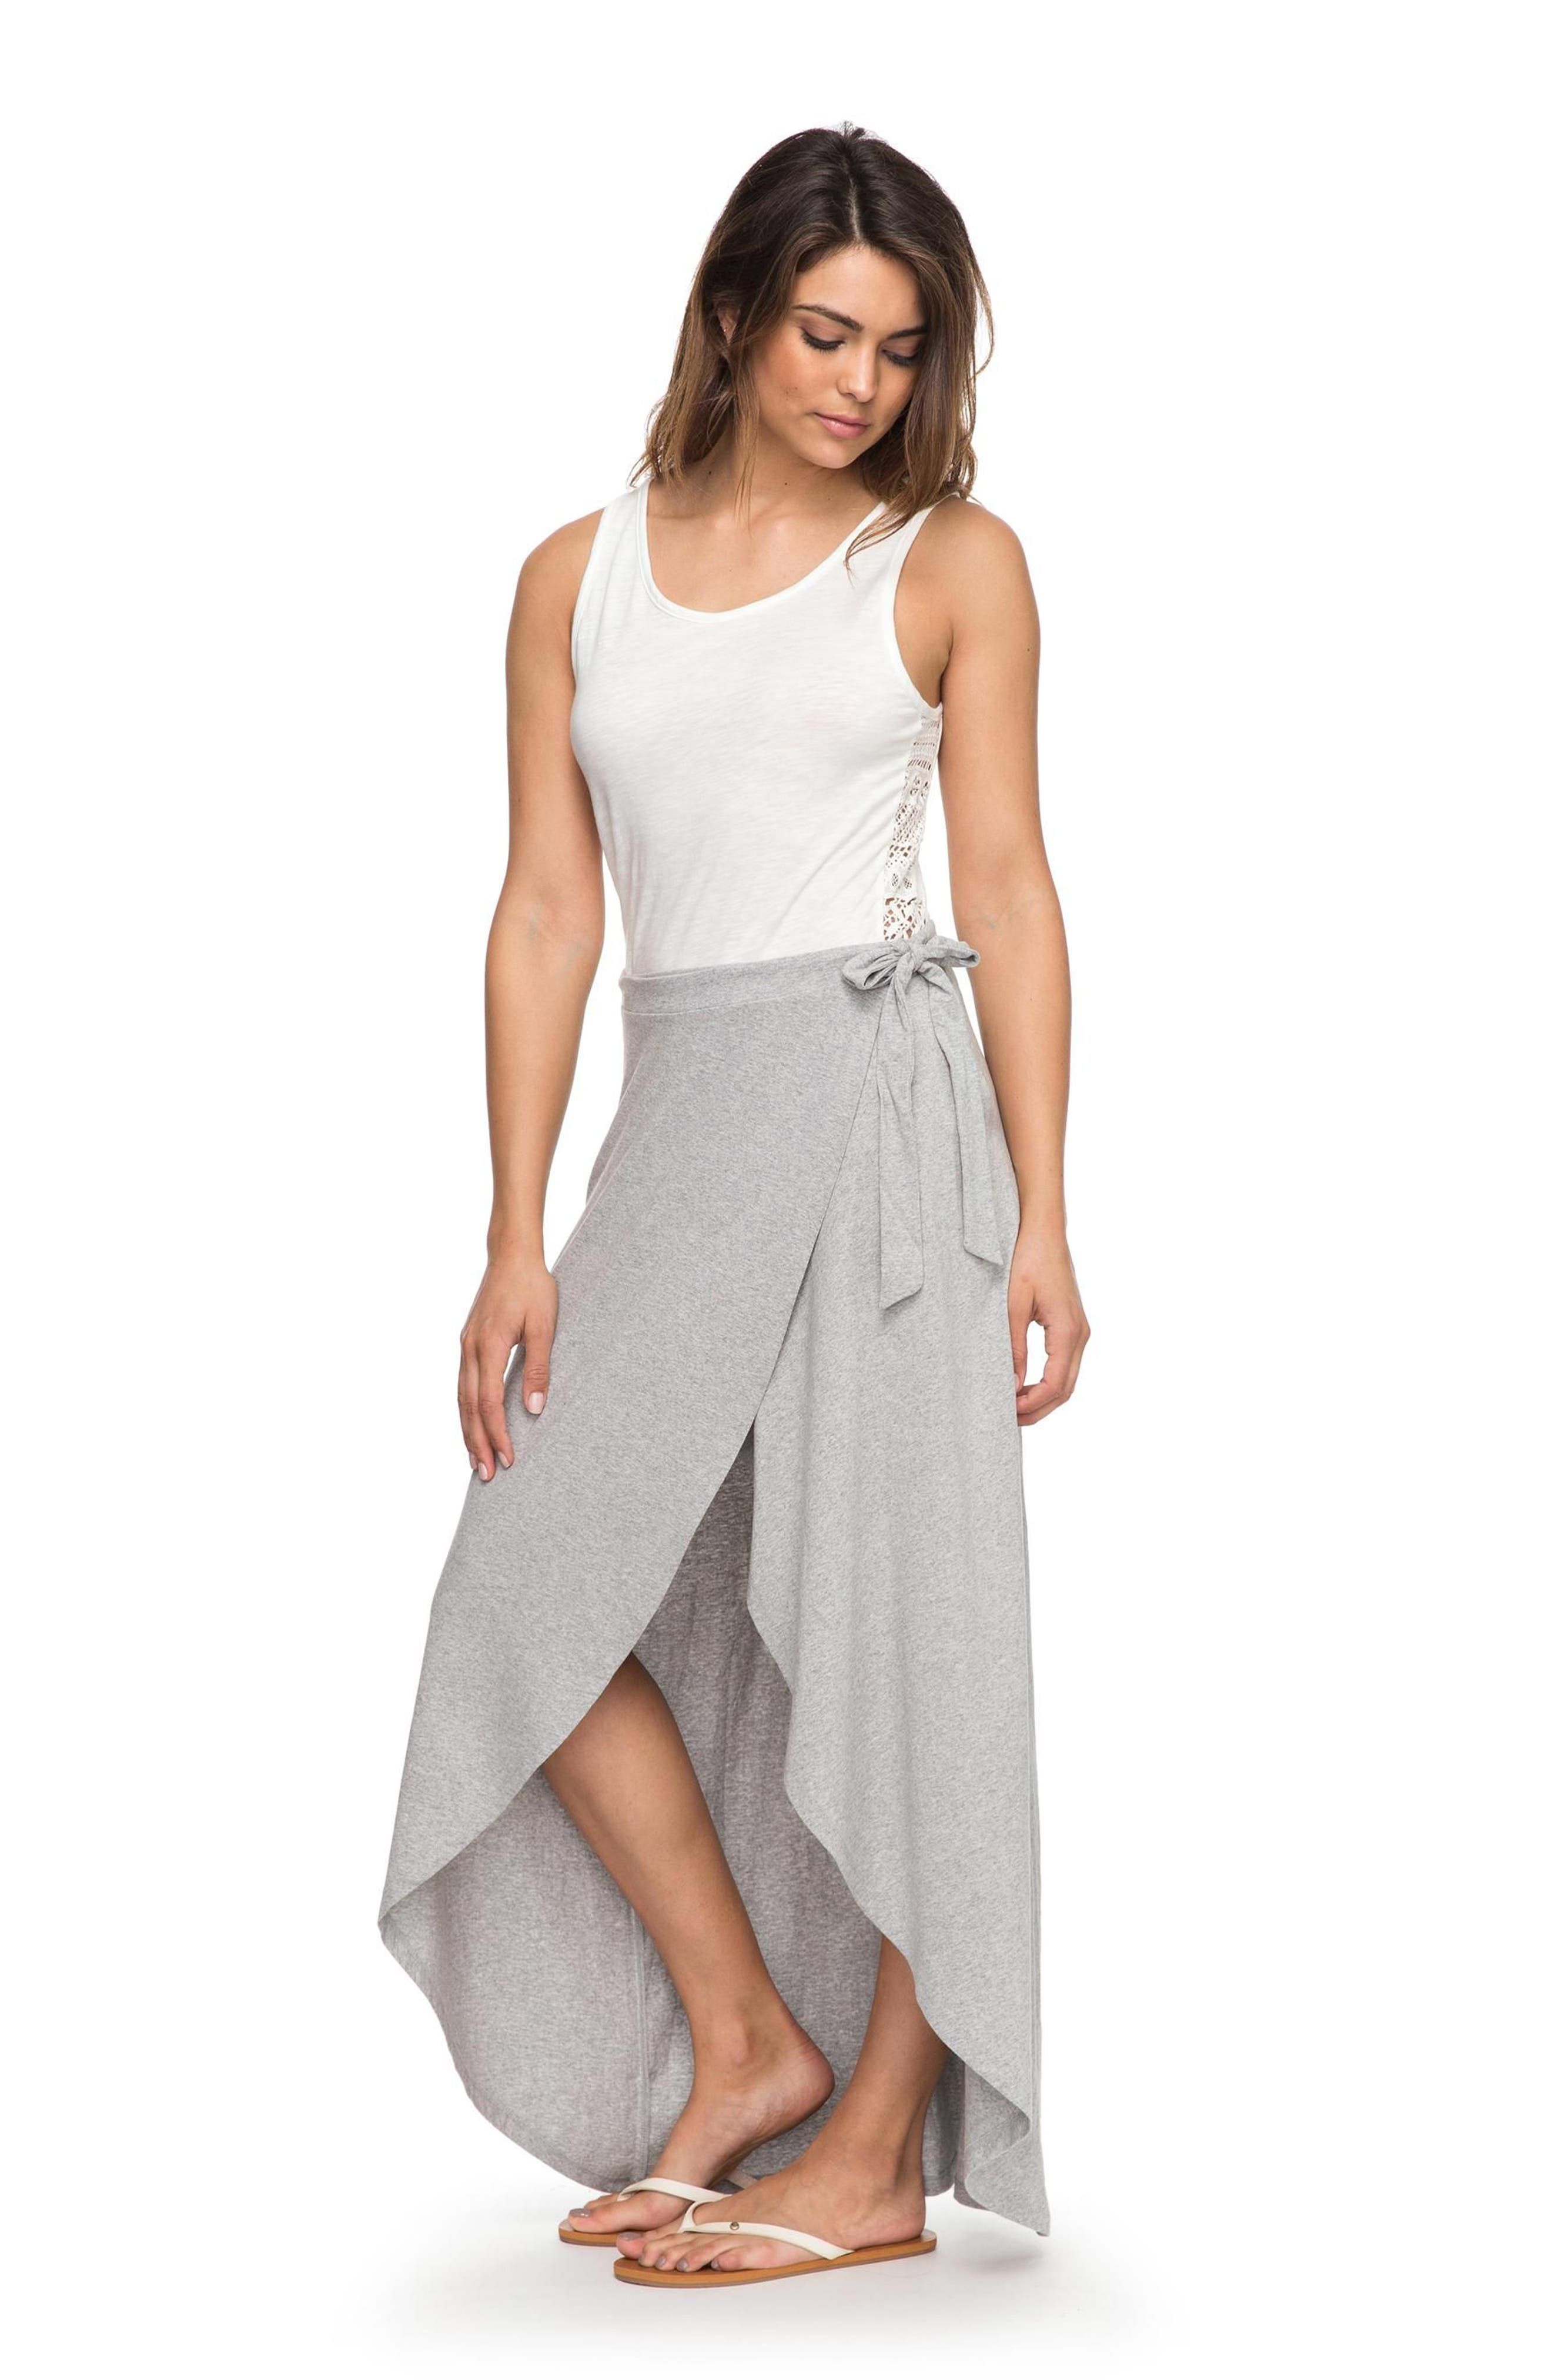 Everlasting Afternoon Long Wrap Skirt,                             Alternate thumbnail 2, color,                             Heritage Heather